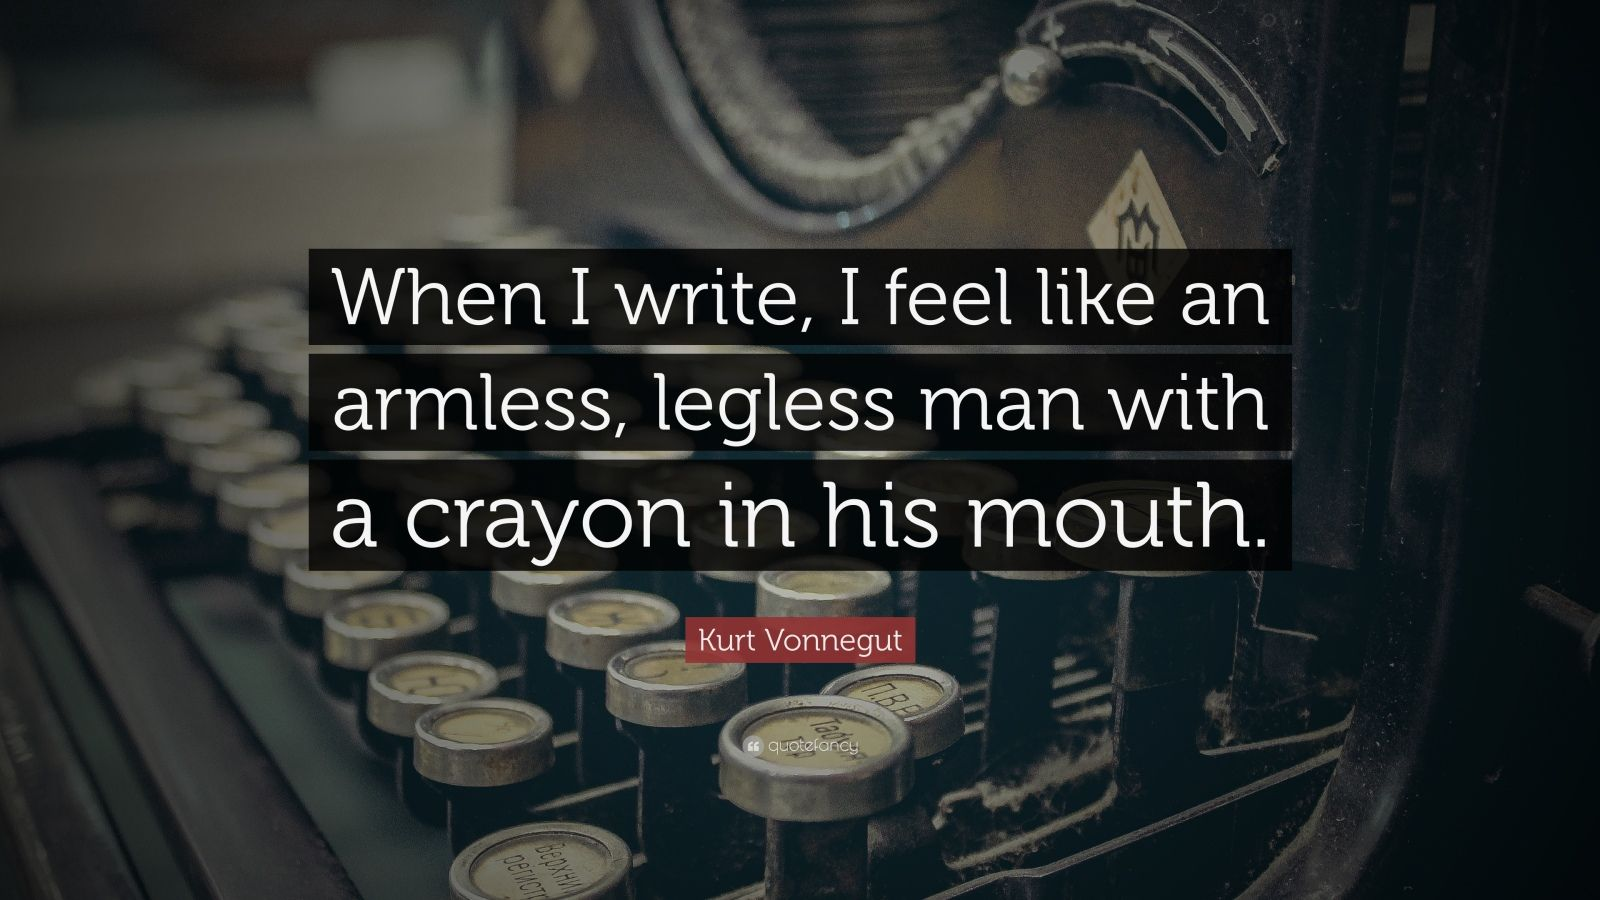 """Kurt Vonnegut Quote: """"When I write, I feel like an armless, legless man with a crayon in his mouth."""""""